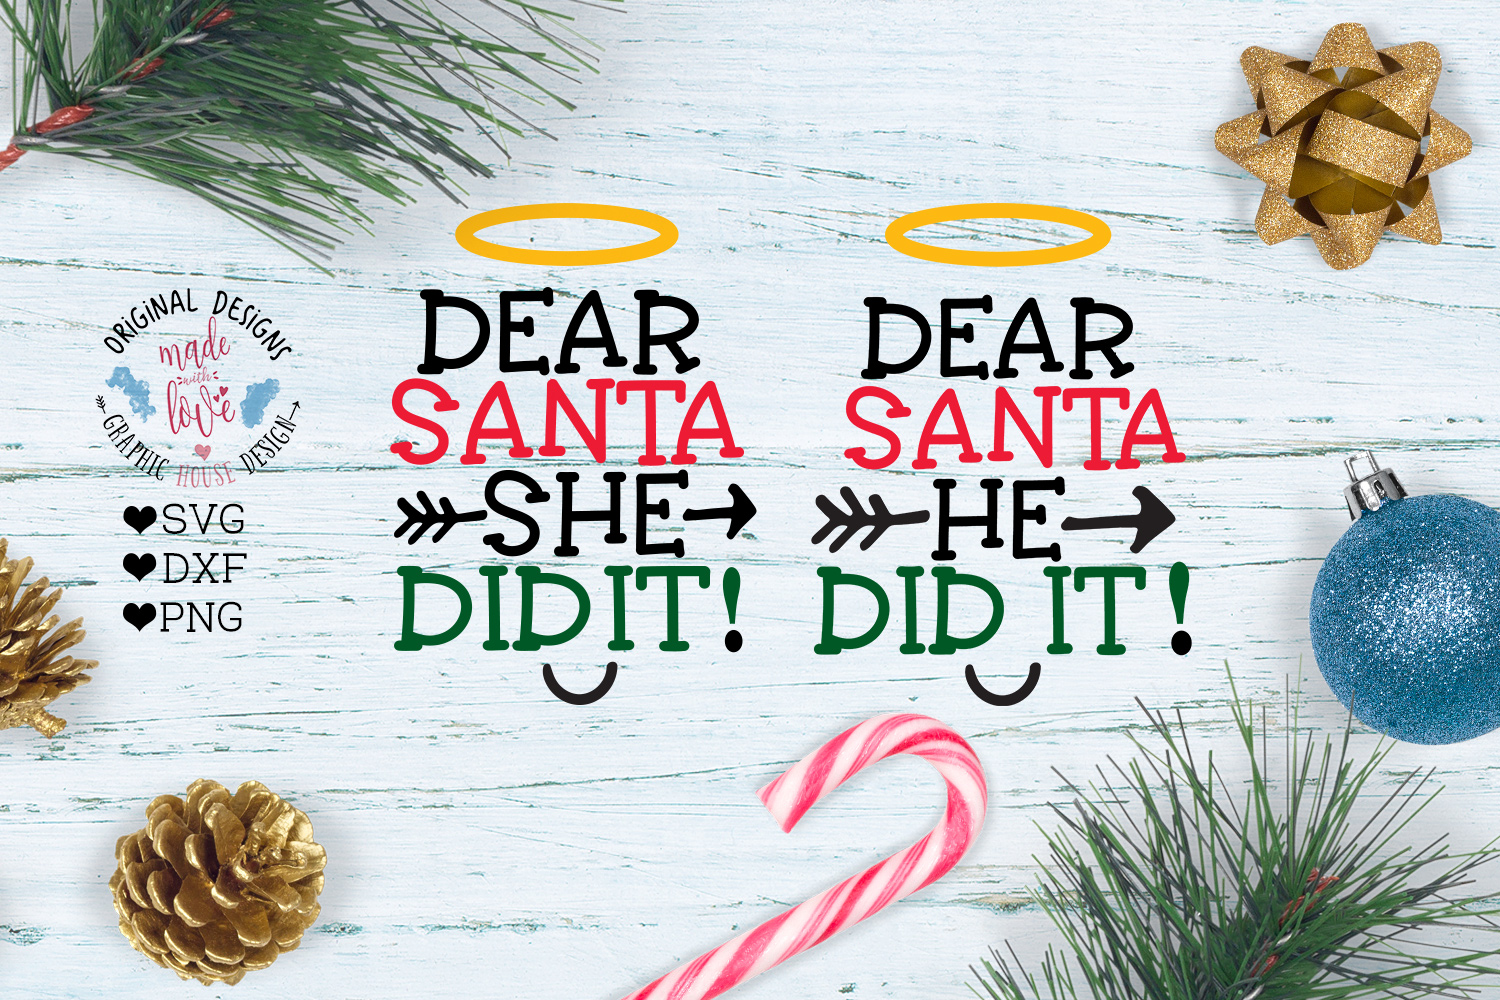 Dear Santa She - He Did It Christmas Cut File example image 1